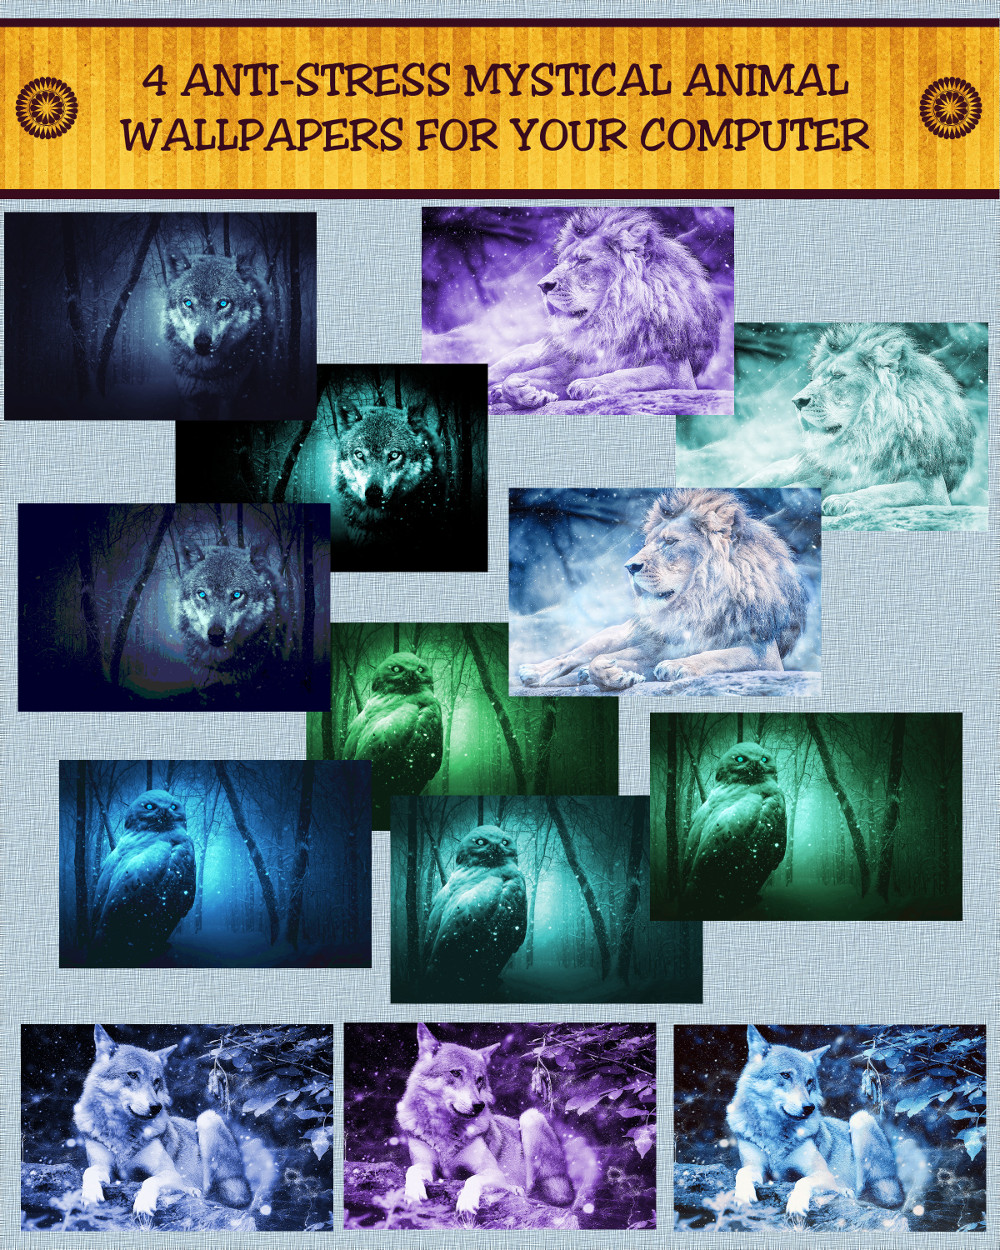 4 Anti-Stress Mystical Animal Wallpapers For Your Computer: Use EFT & These Gorgeous Animals To ...